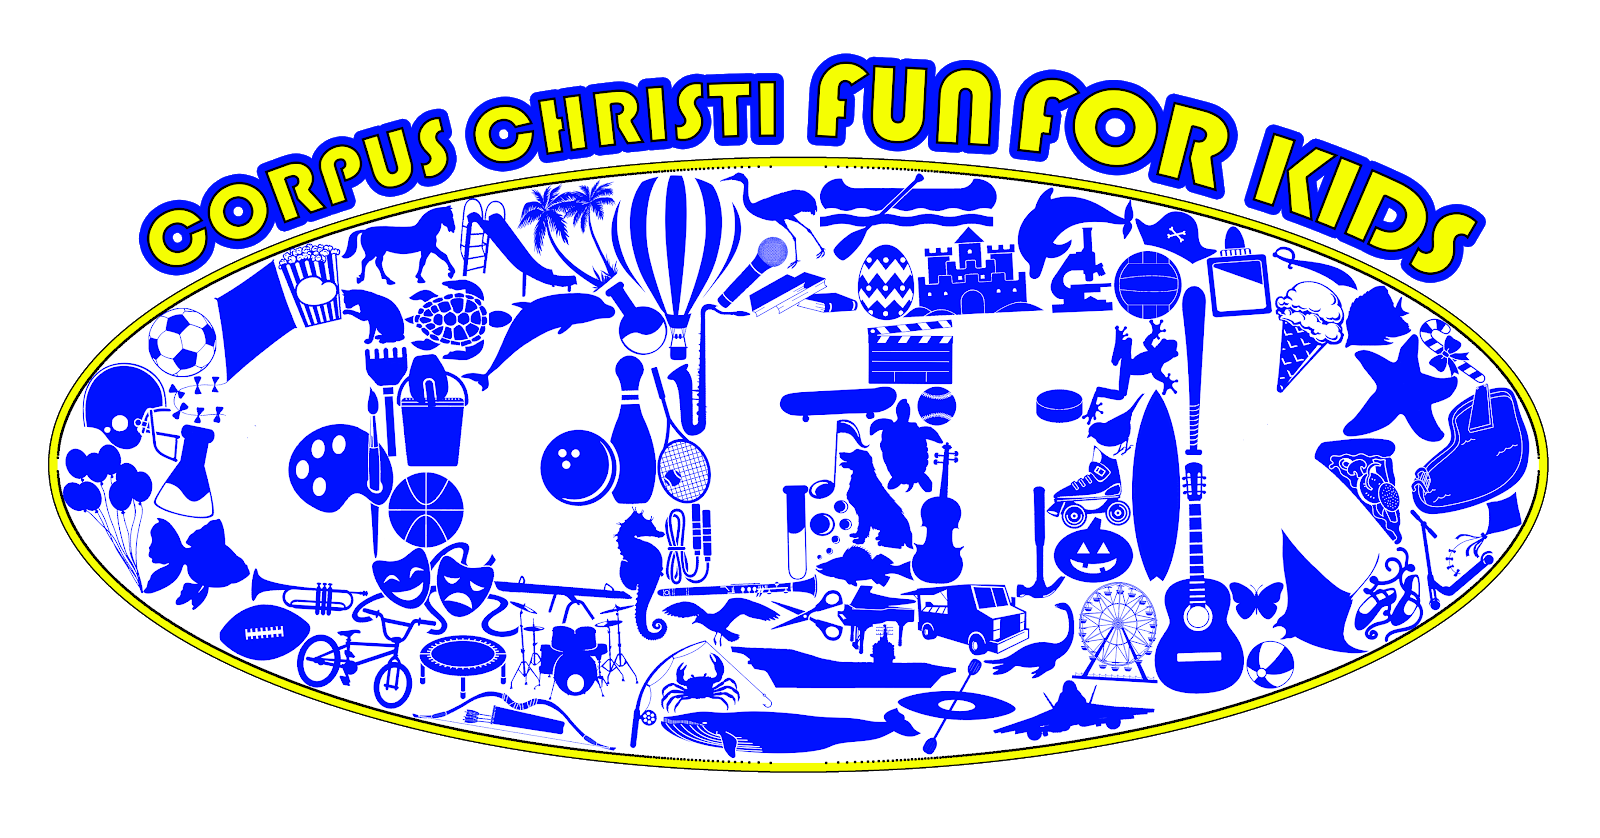 Corpus Christi Fun for Kids